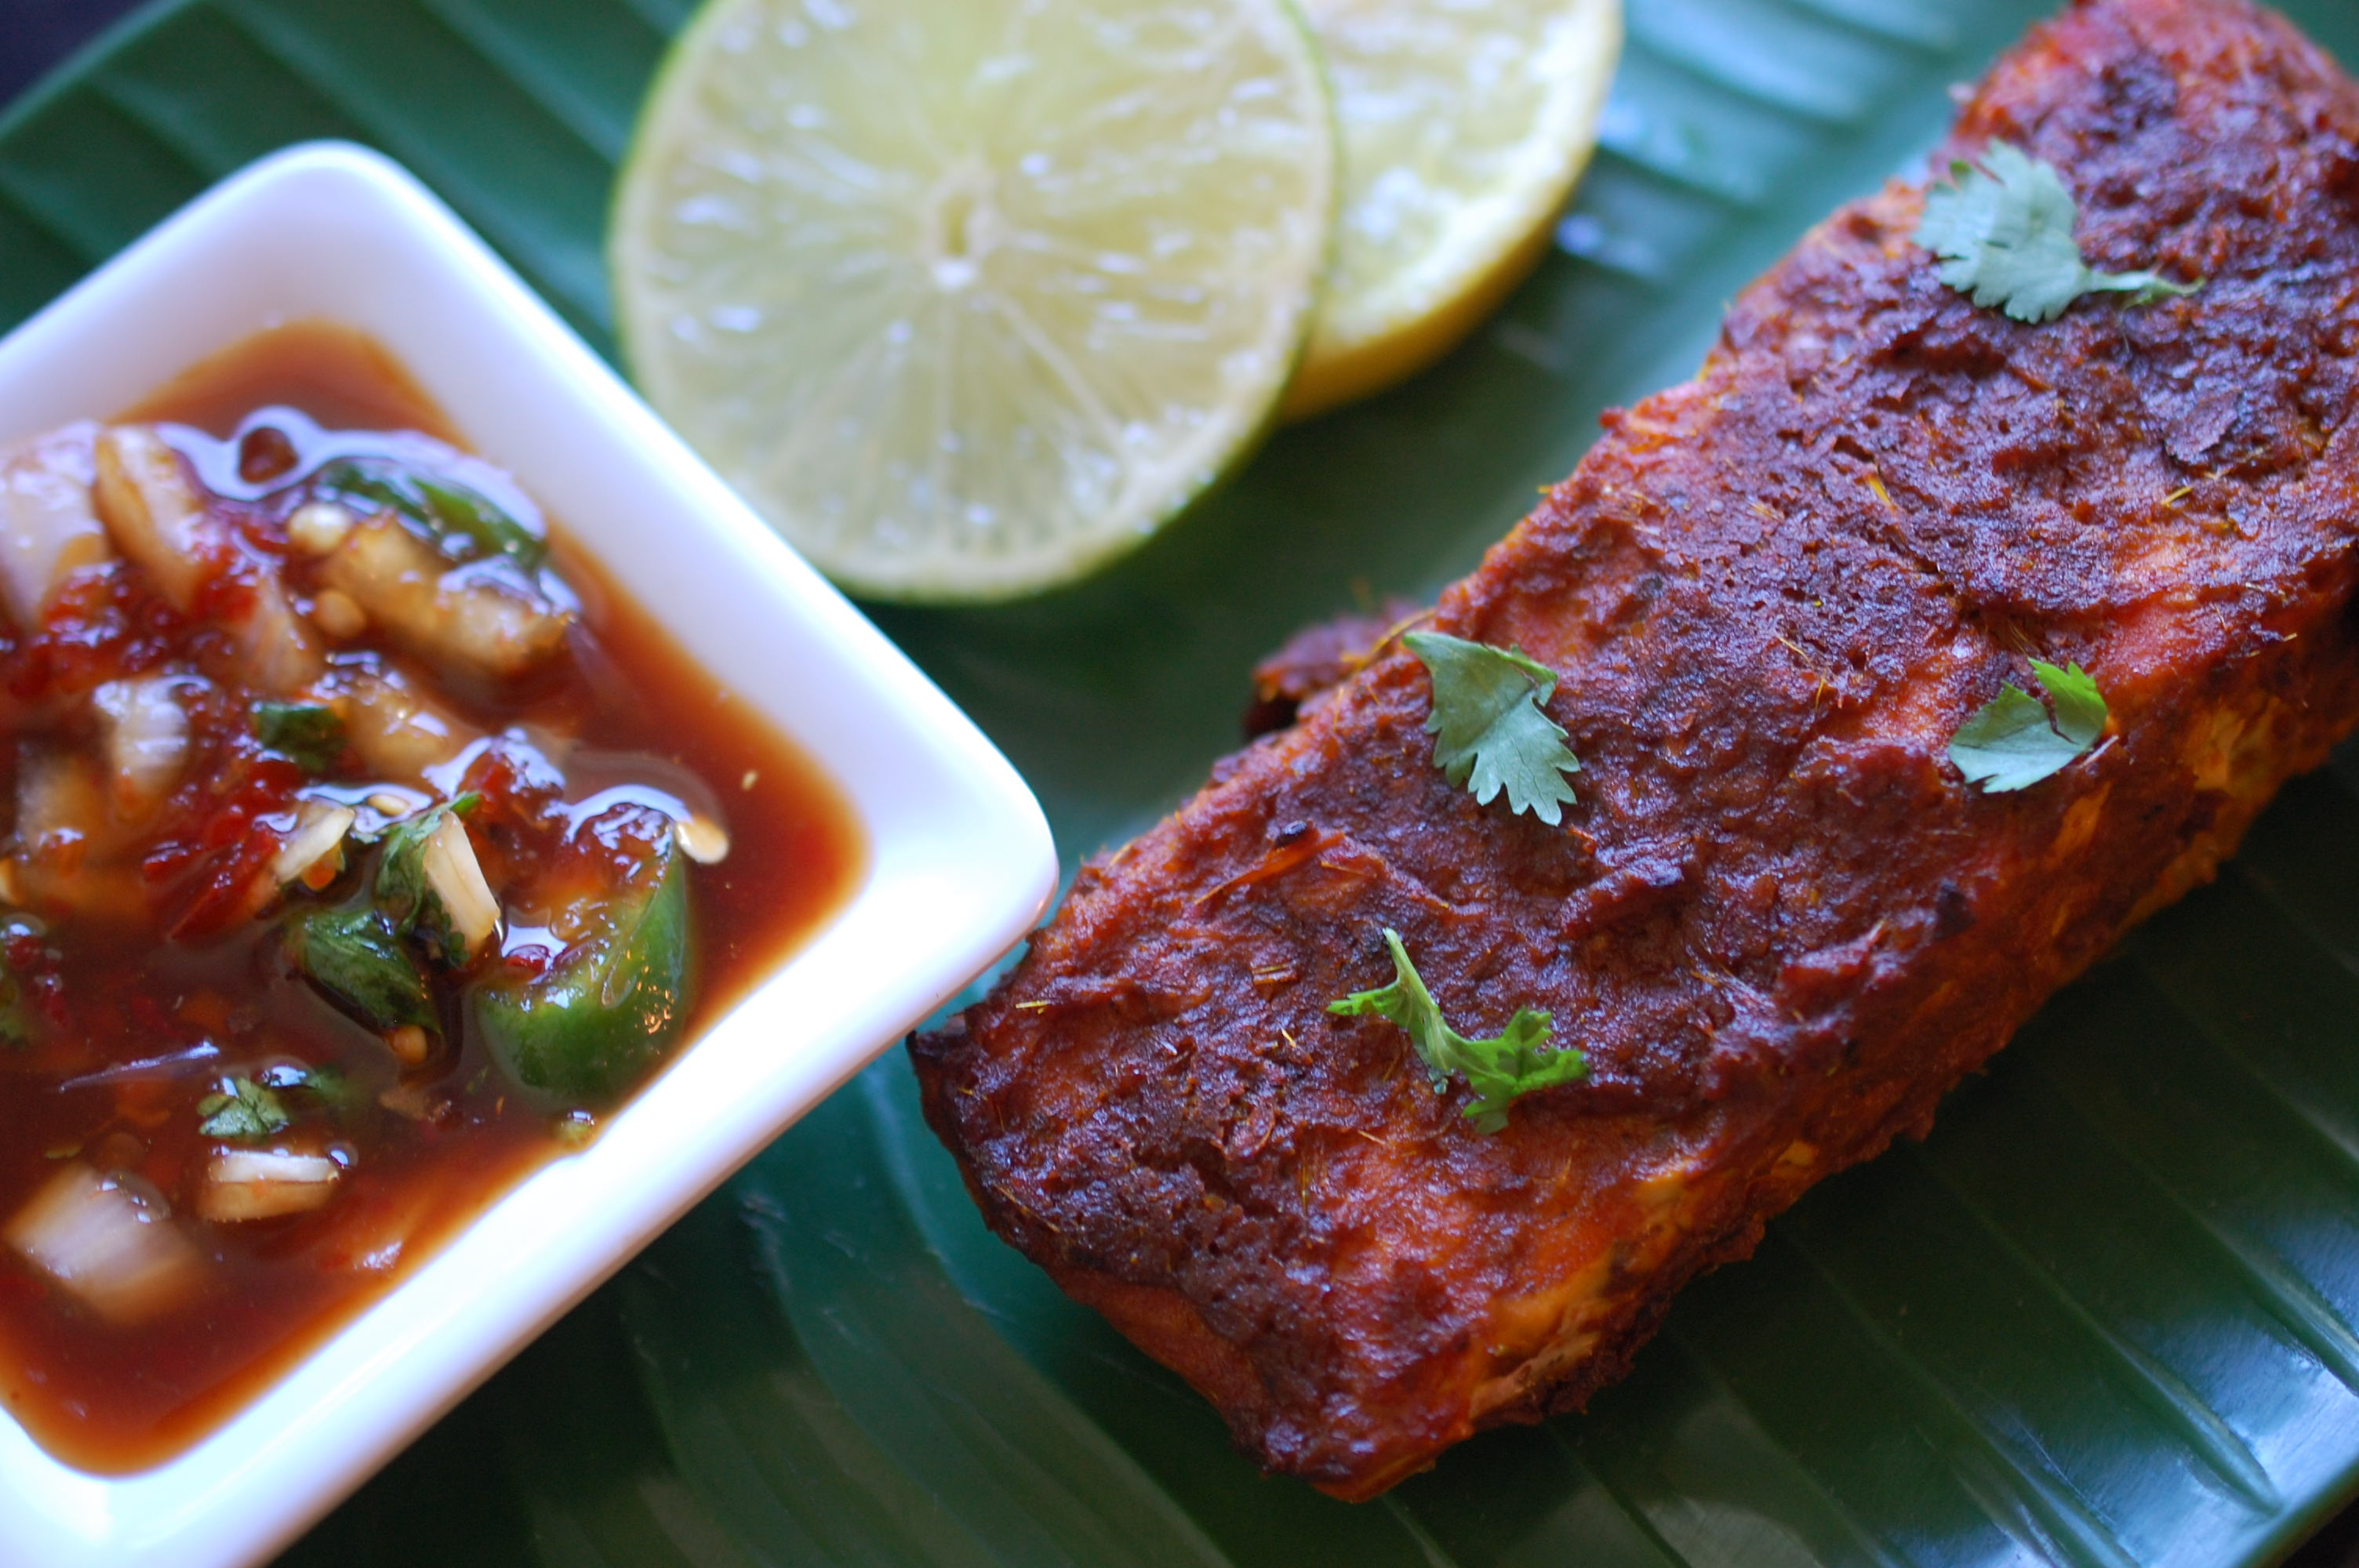 """The special Ipoh """"ikan bakar"""" is being served right here somewhere along Route 66. Isn't that for real?"""